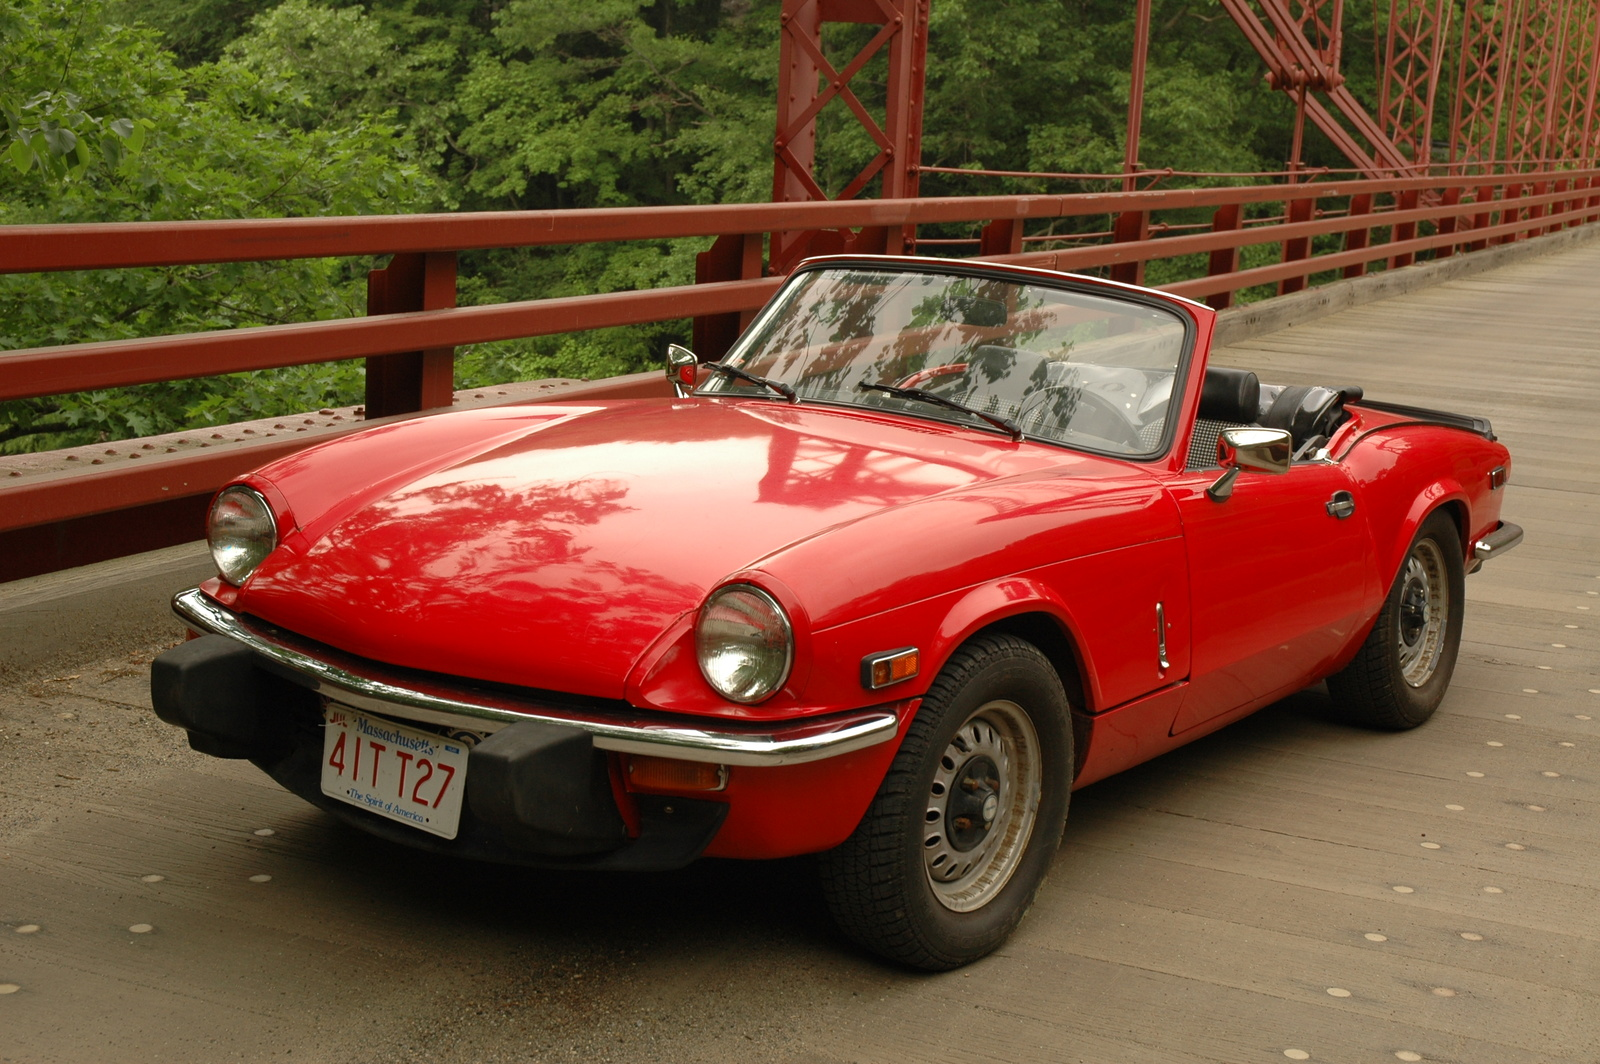 Cars (and other motorized vehicles) on Pinterest ...